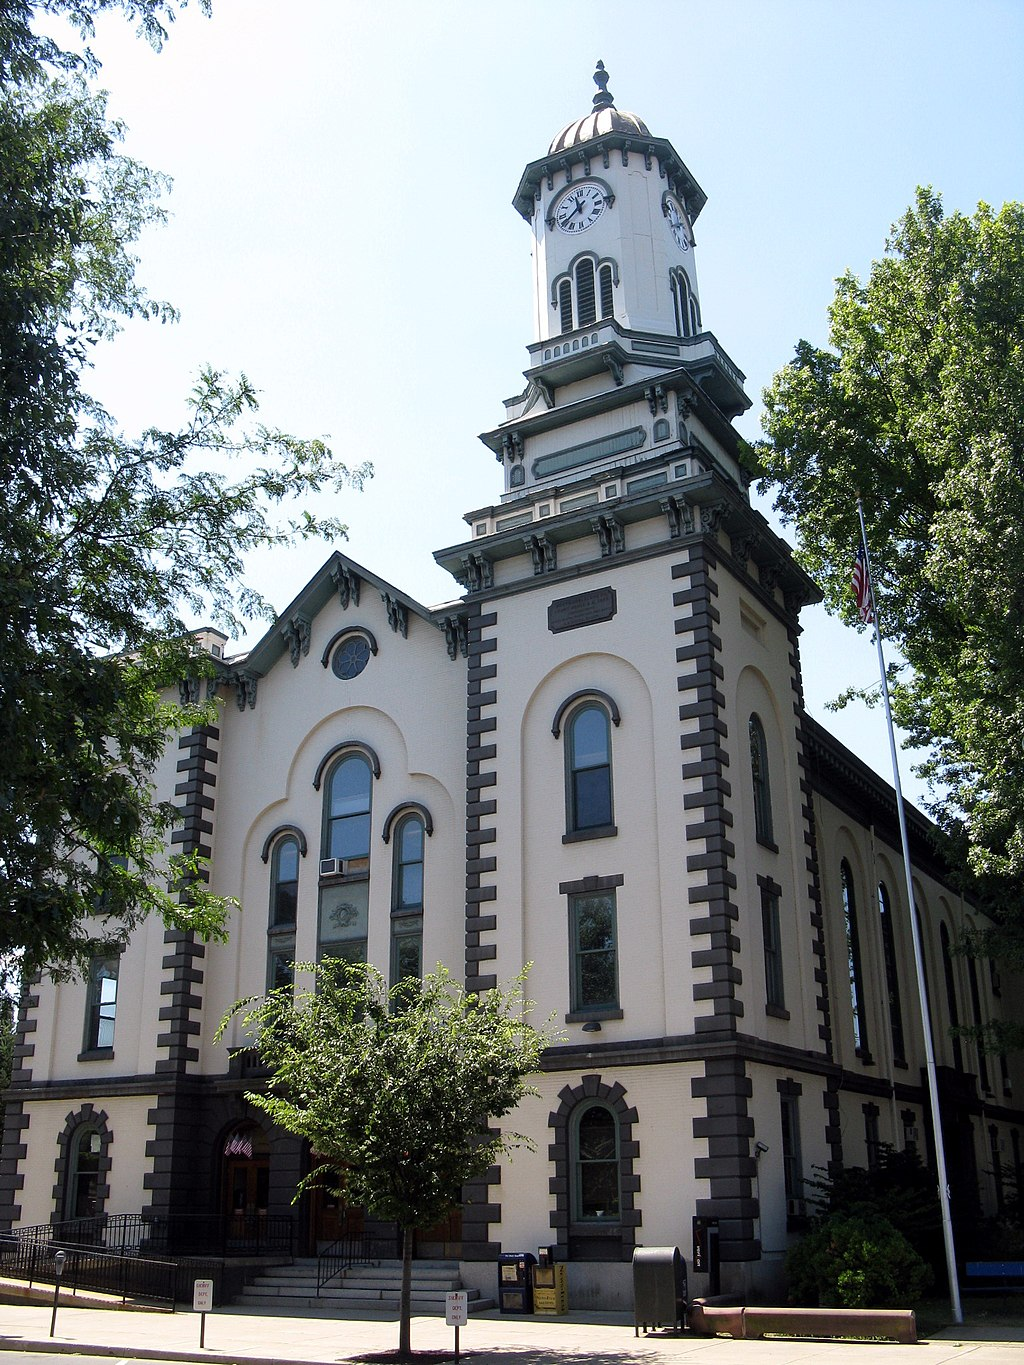 Northumberland County Courthouse - Sunbury, PA